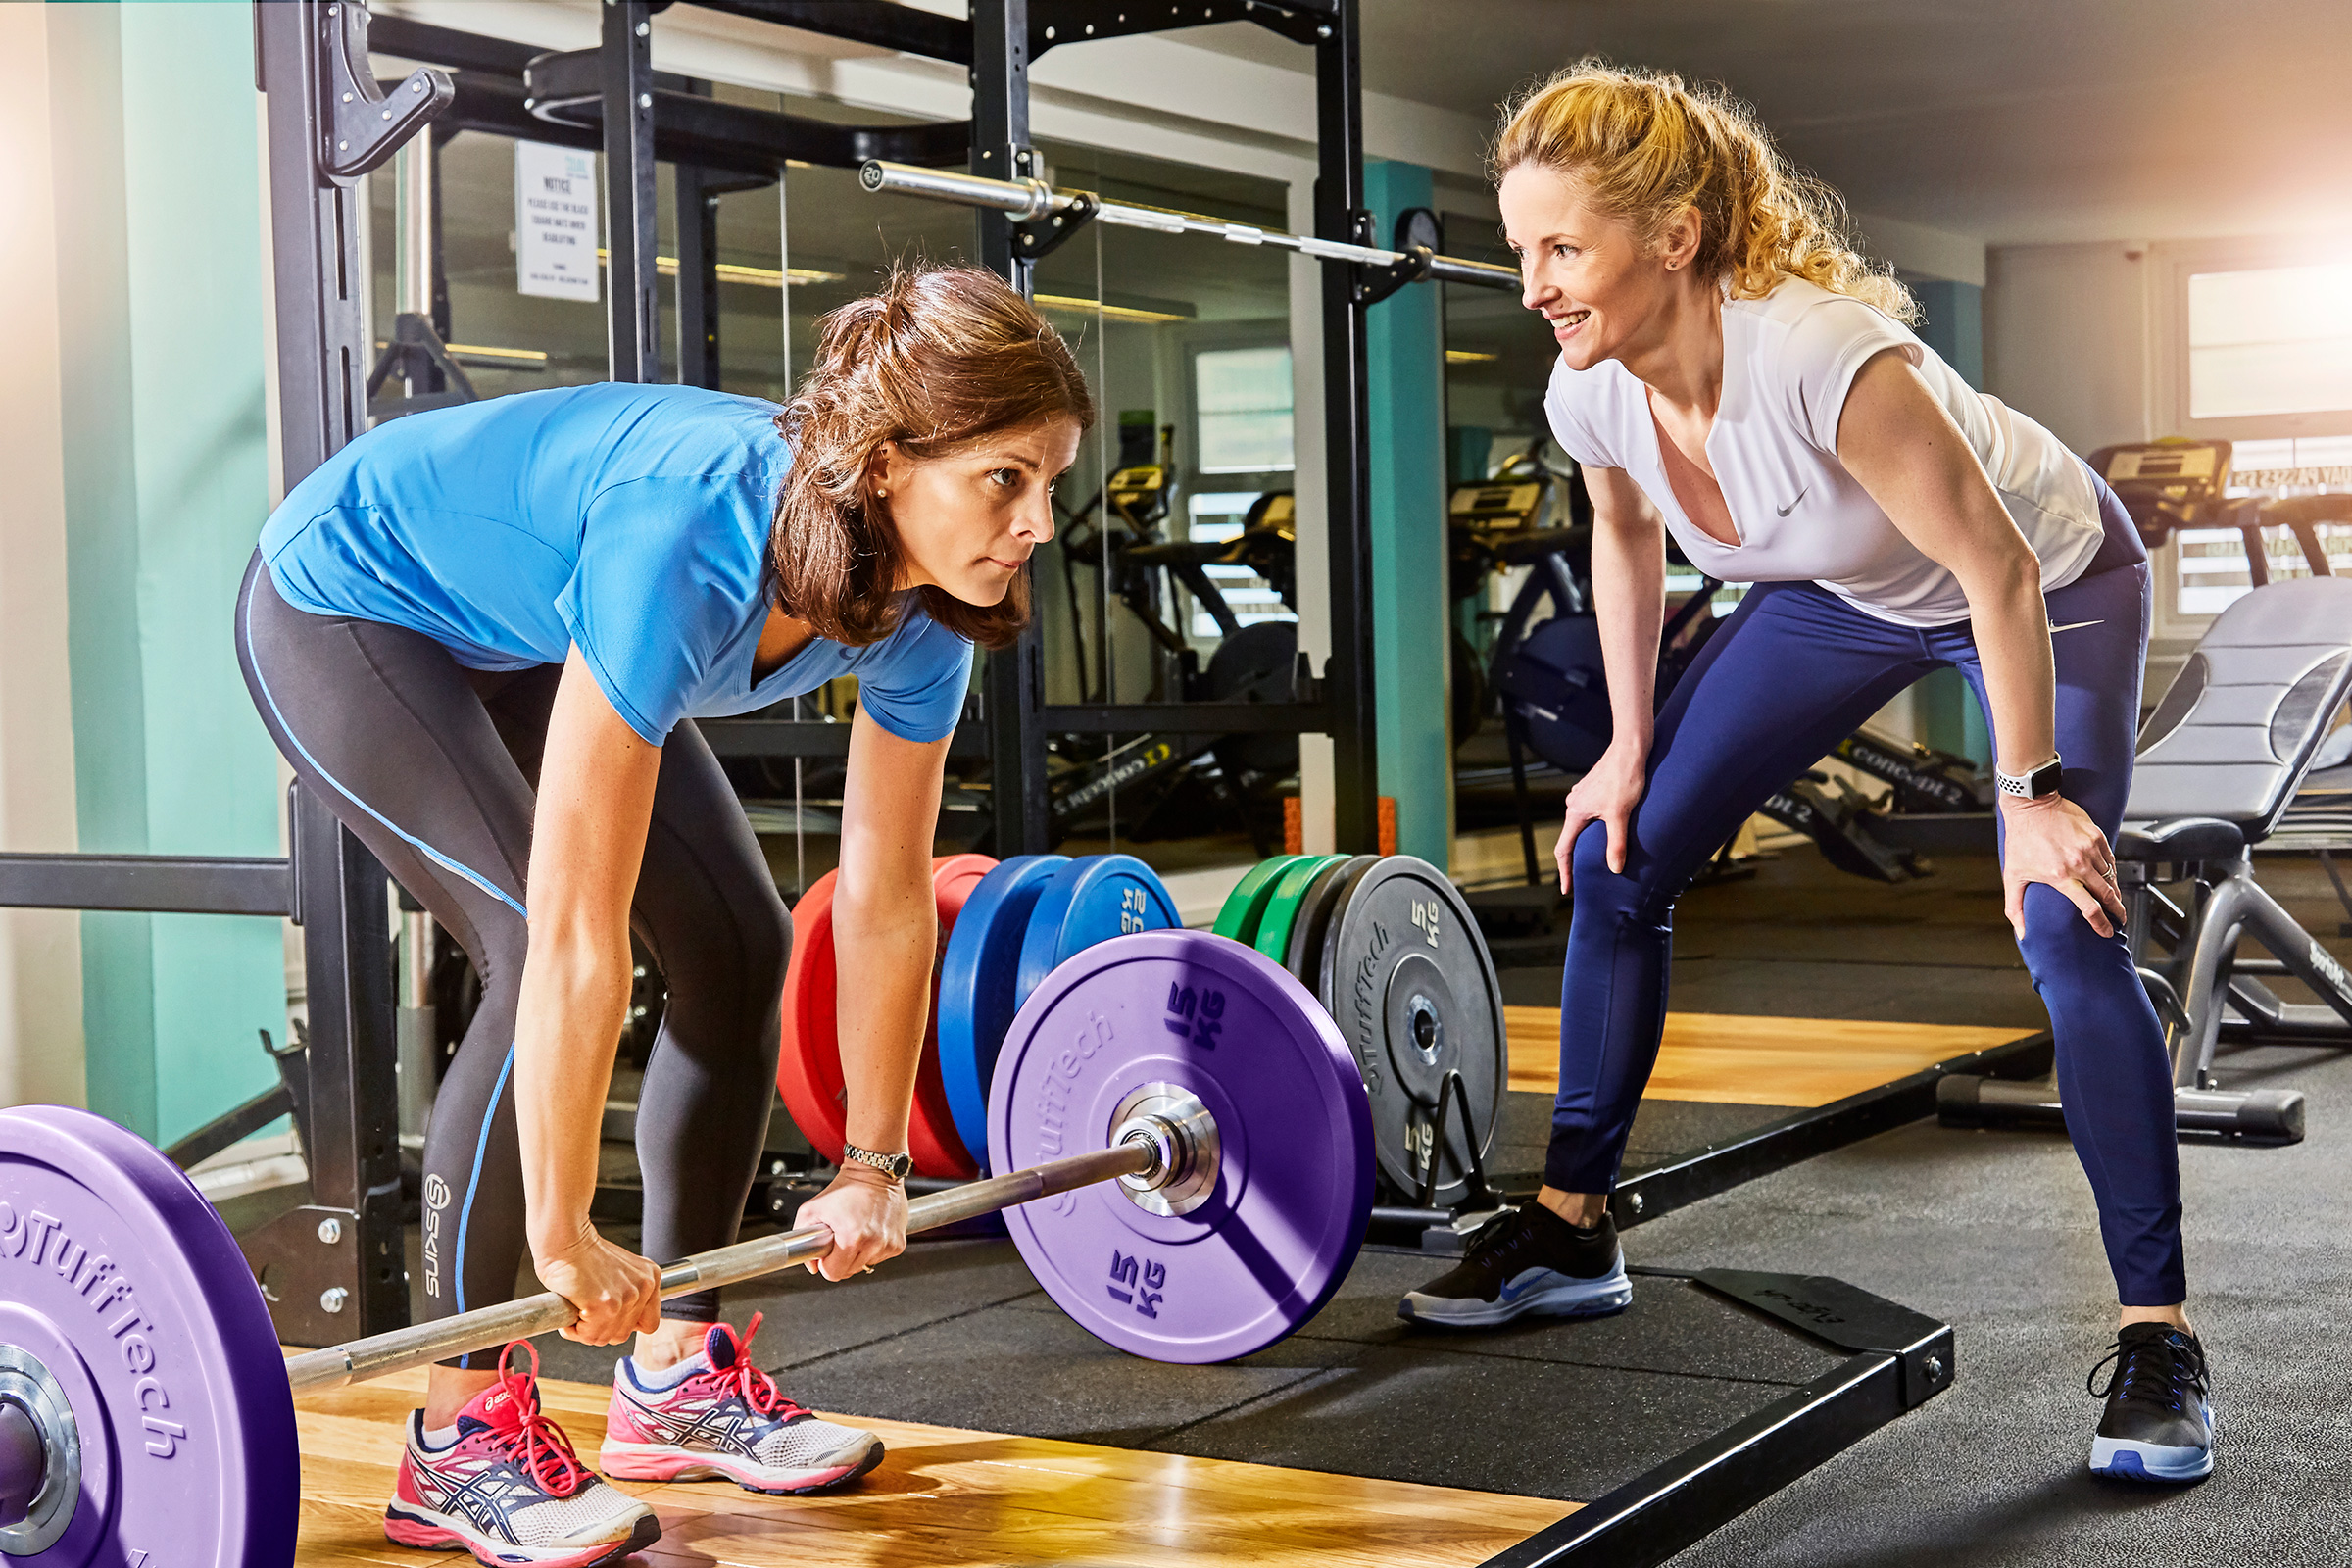 Location photography surrey uk - fitness coach training woman using weights in the gym.  Local business photography, Sussex